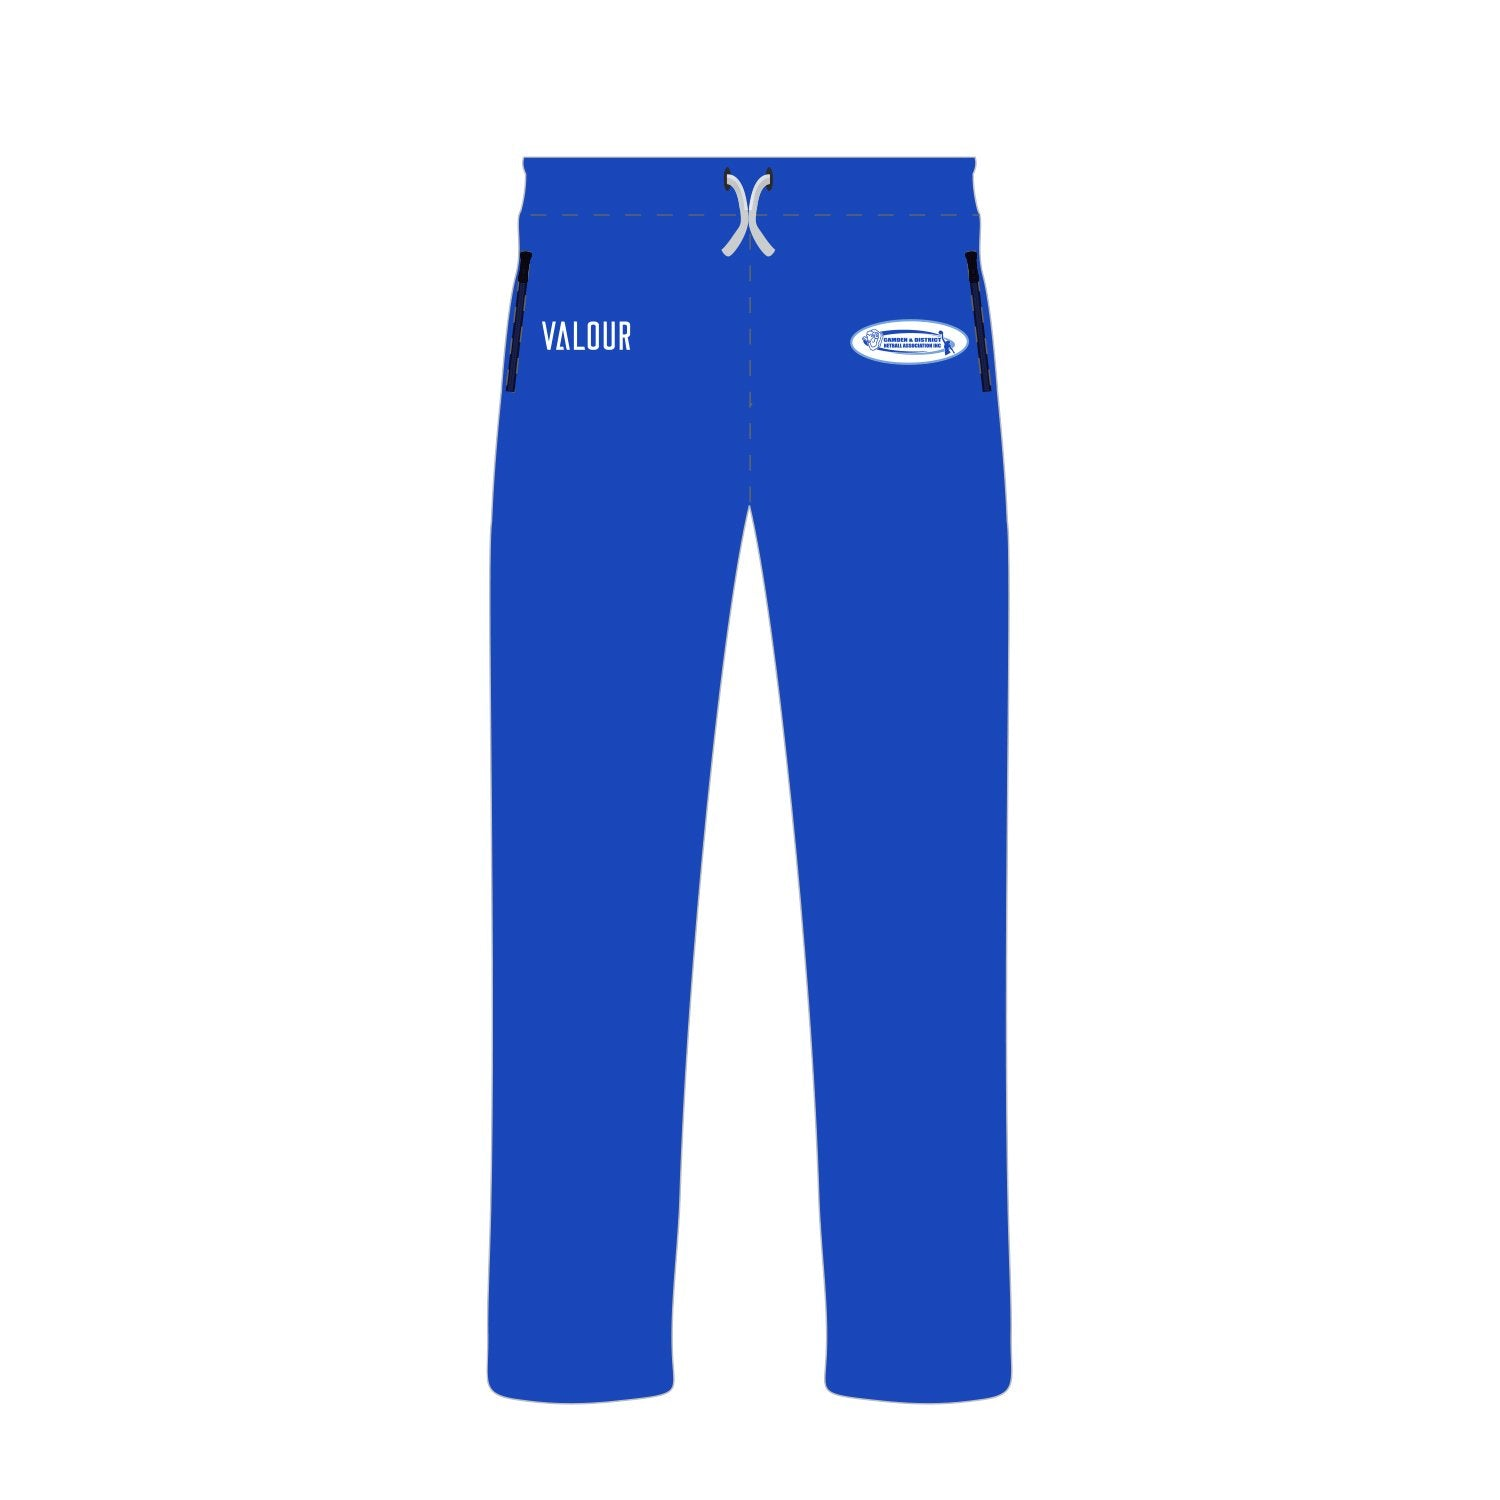 CDNA Representative Track Pants